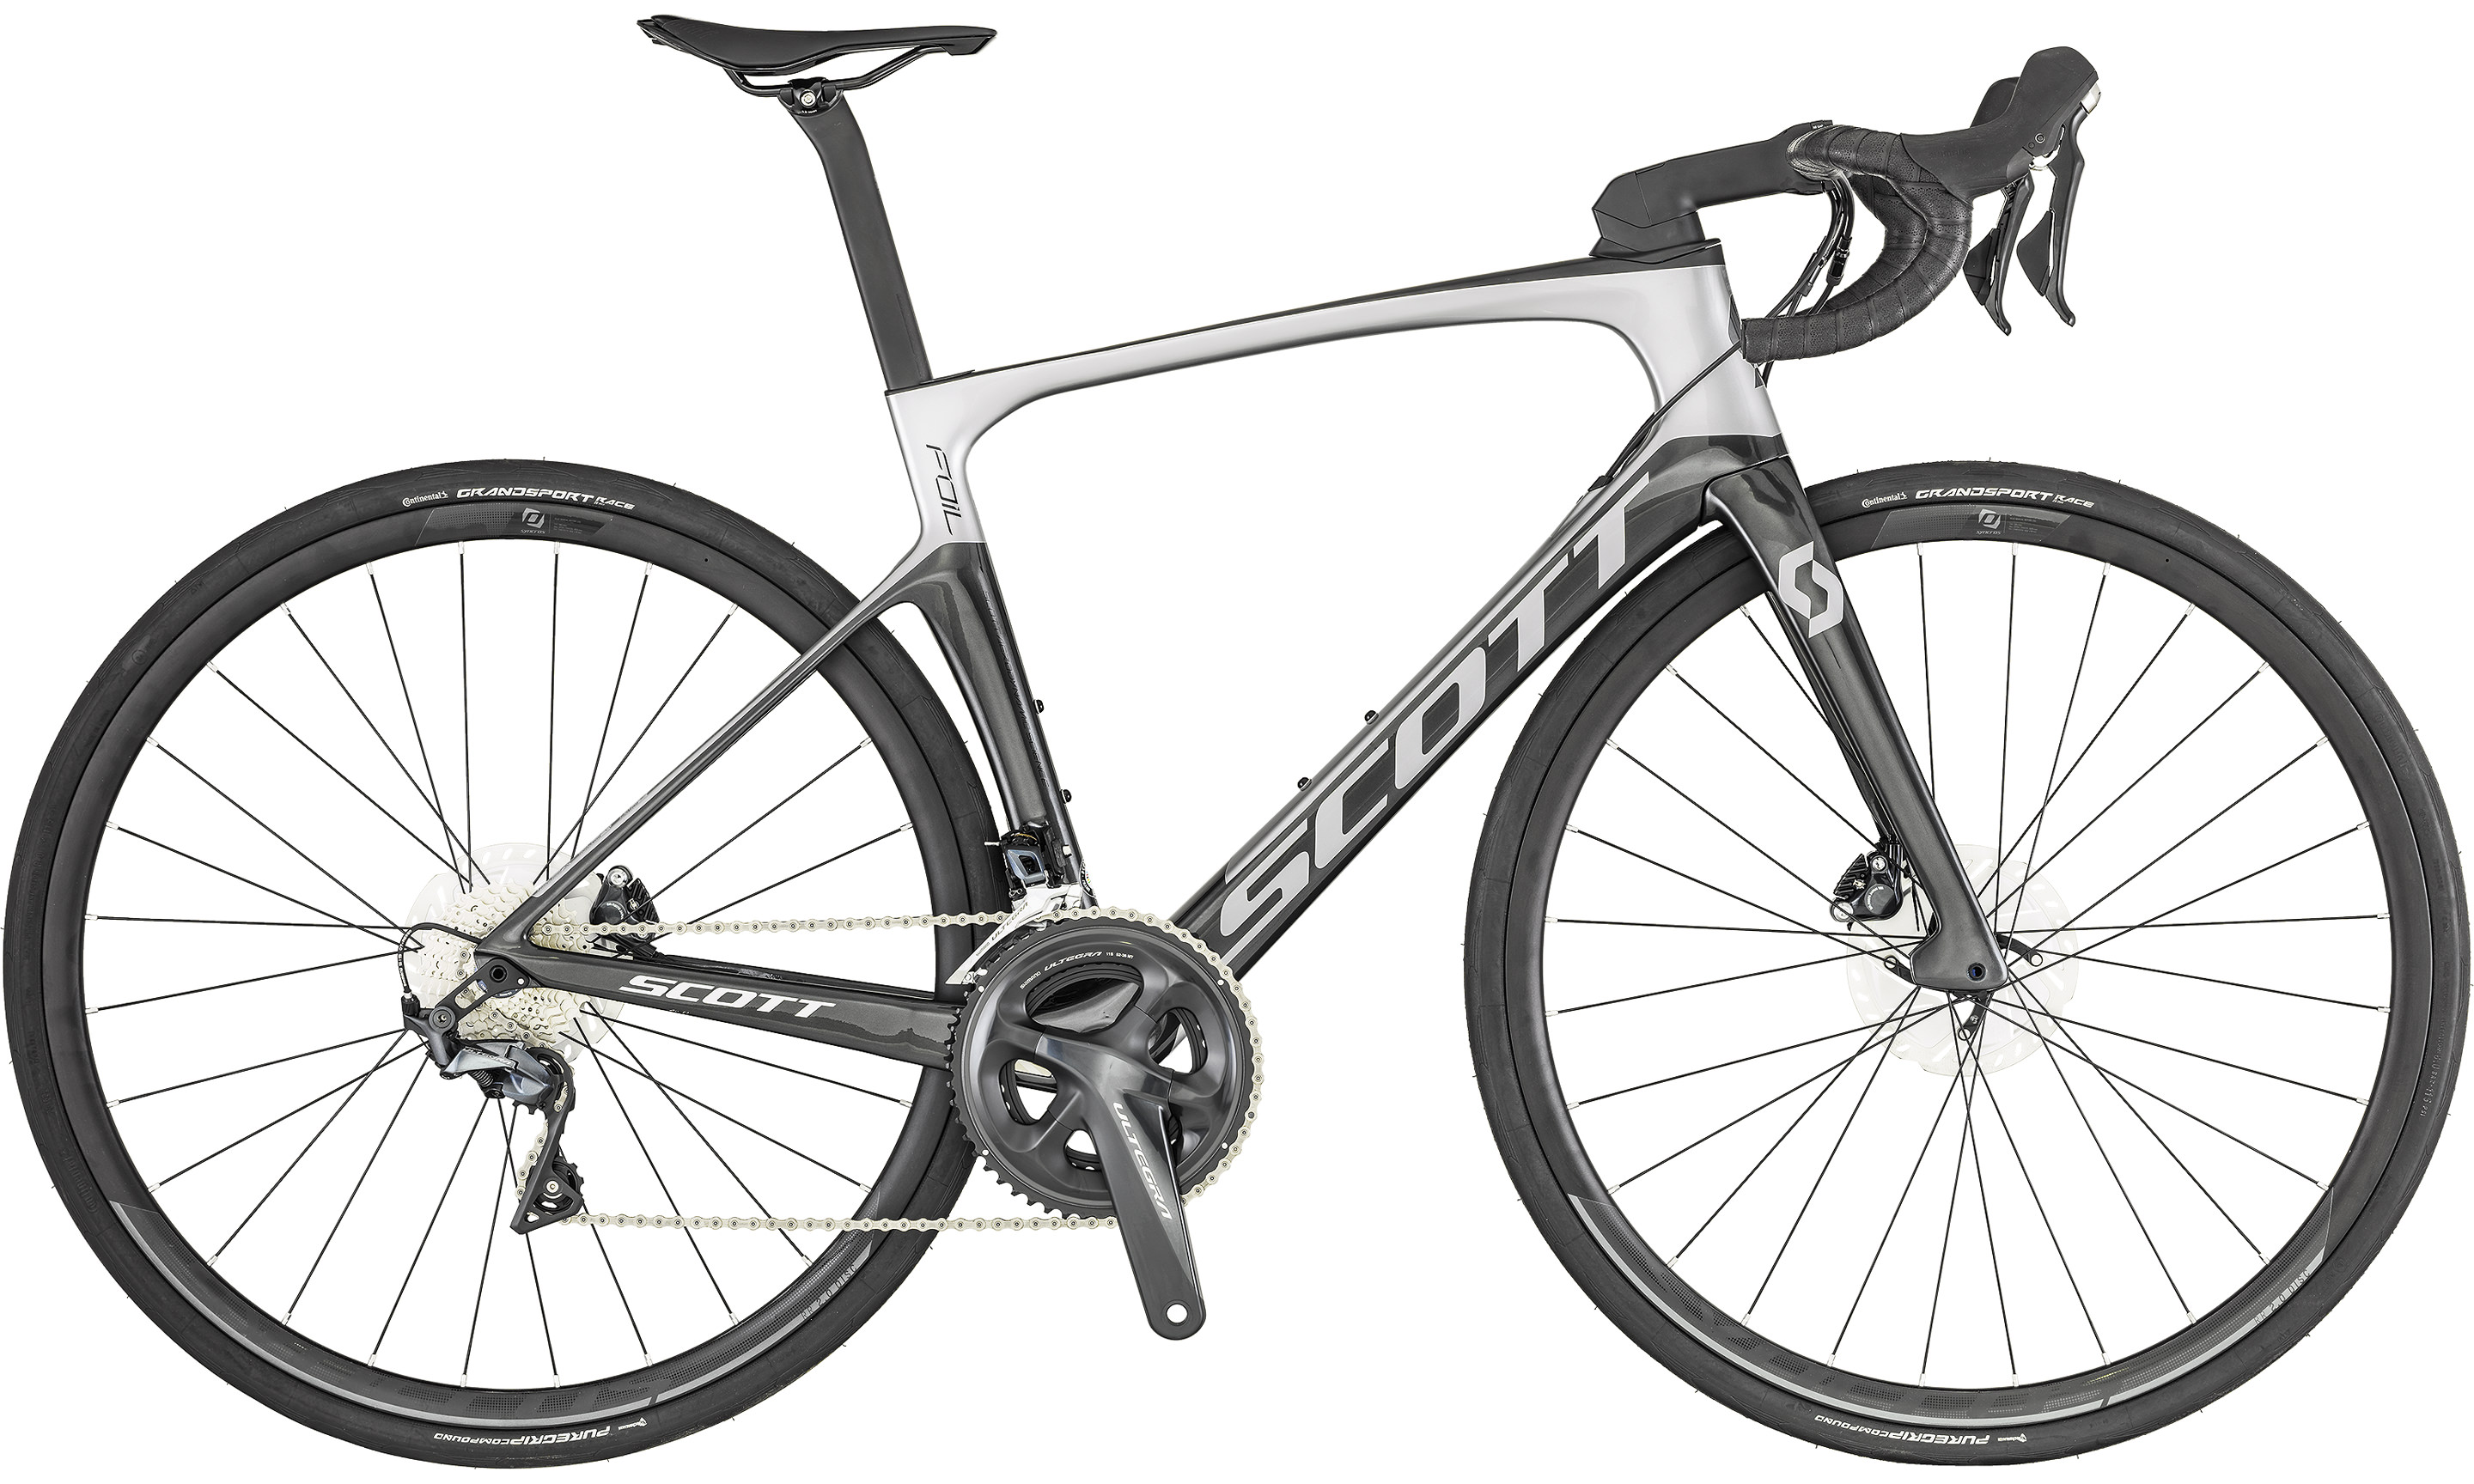 Foil 20 disc silver/black  | Culture Vélo